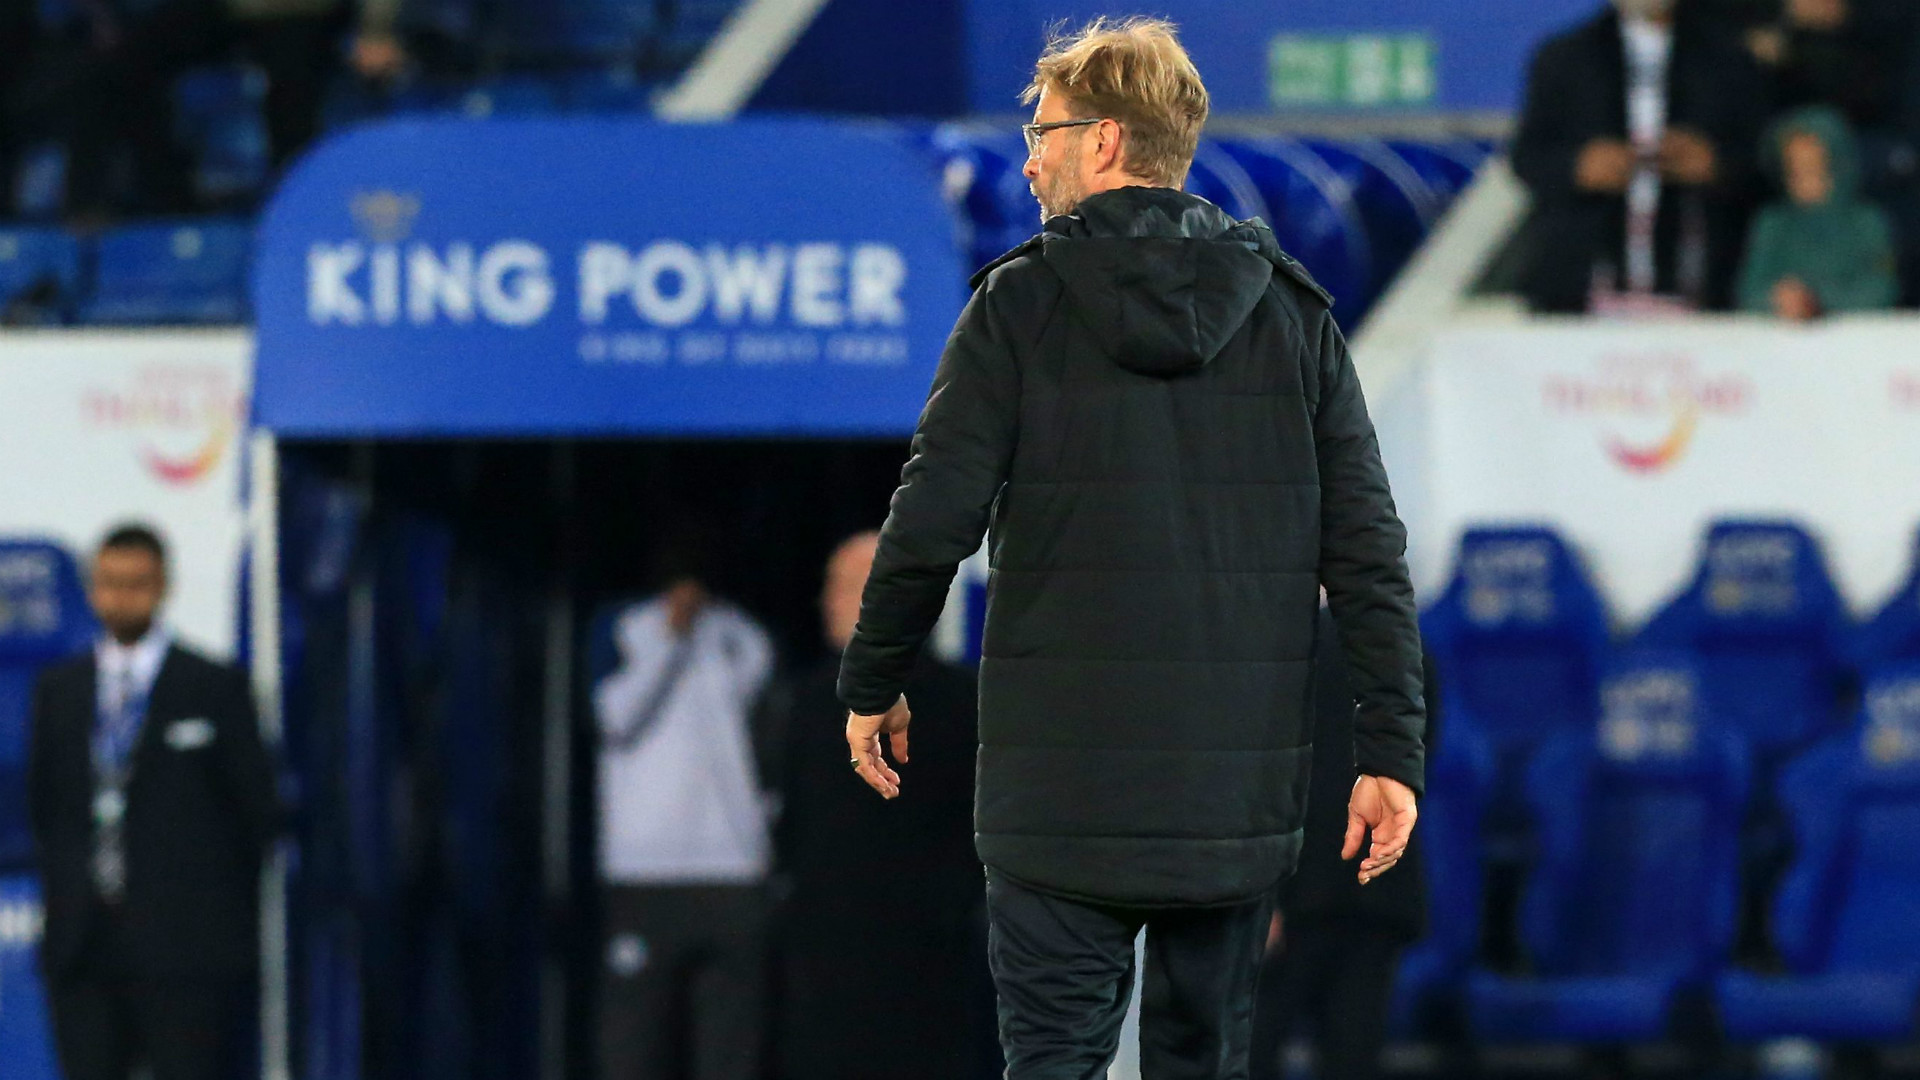 Leicester City Vs Liverpool: TV Channel, Stream, Kick-off